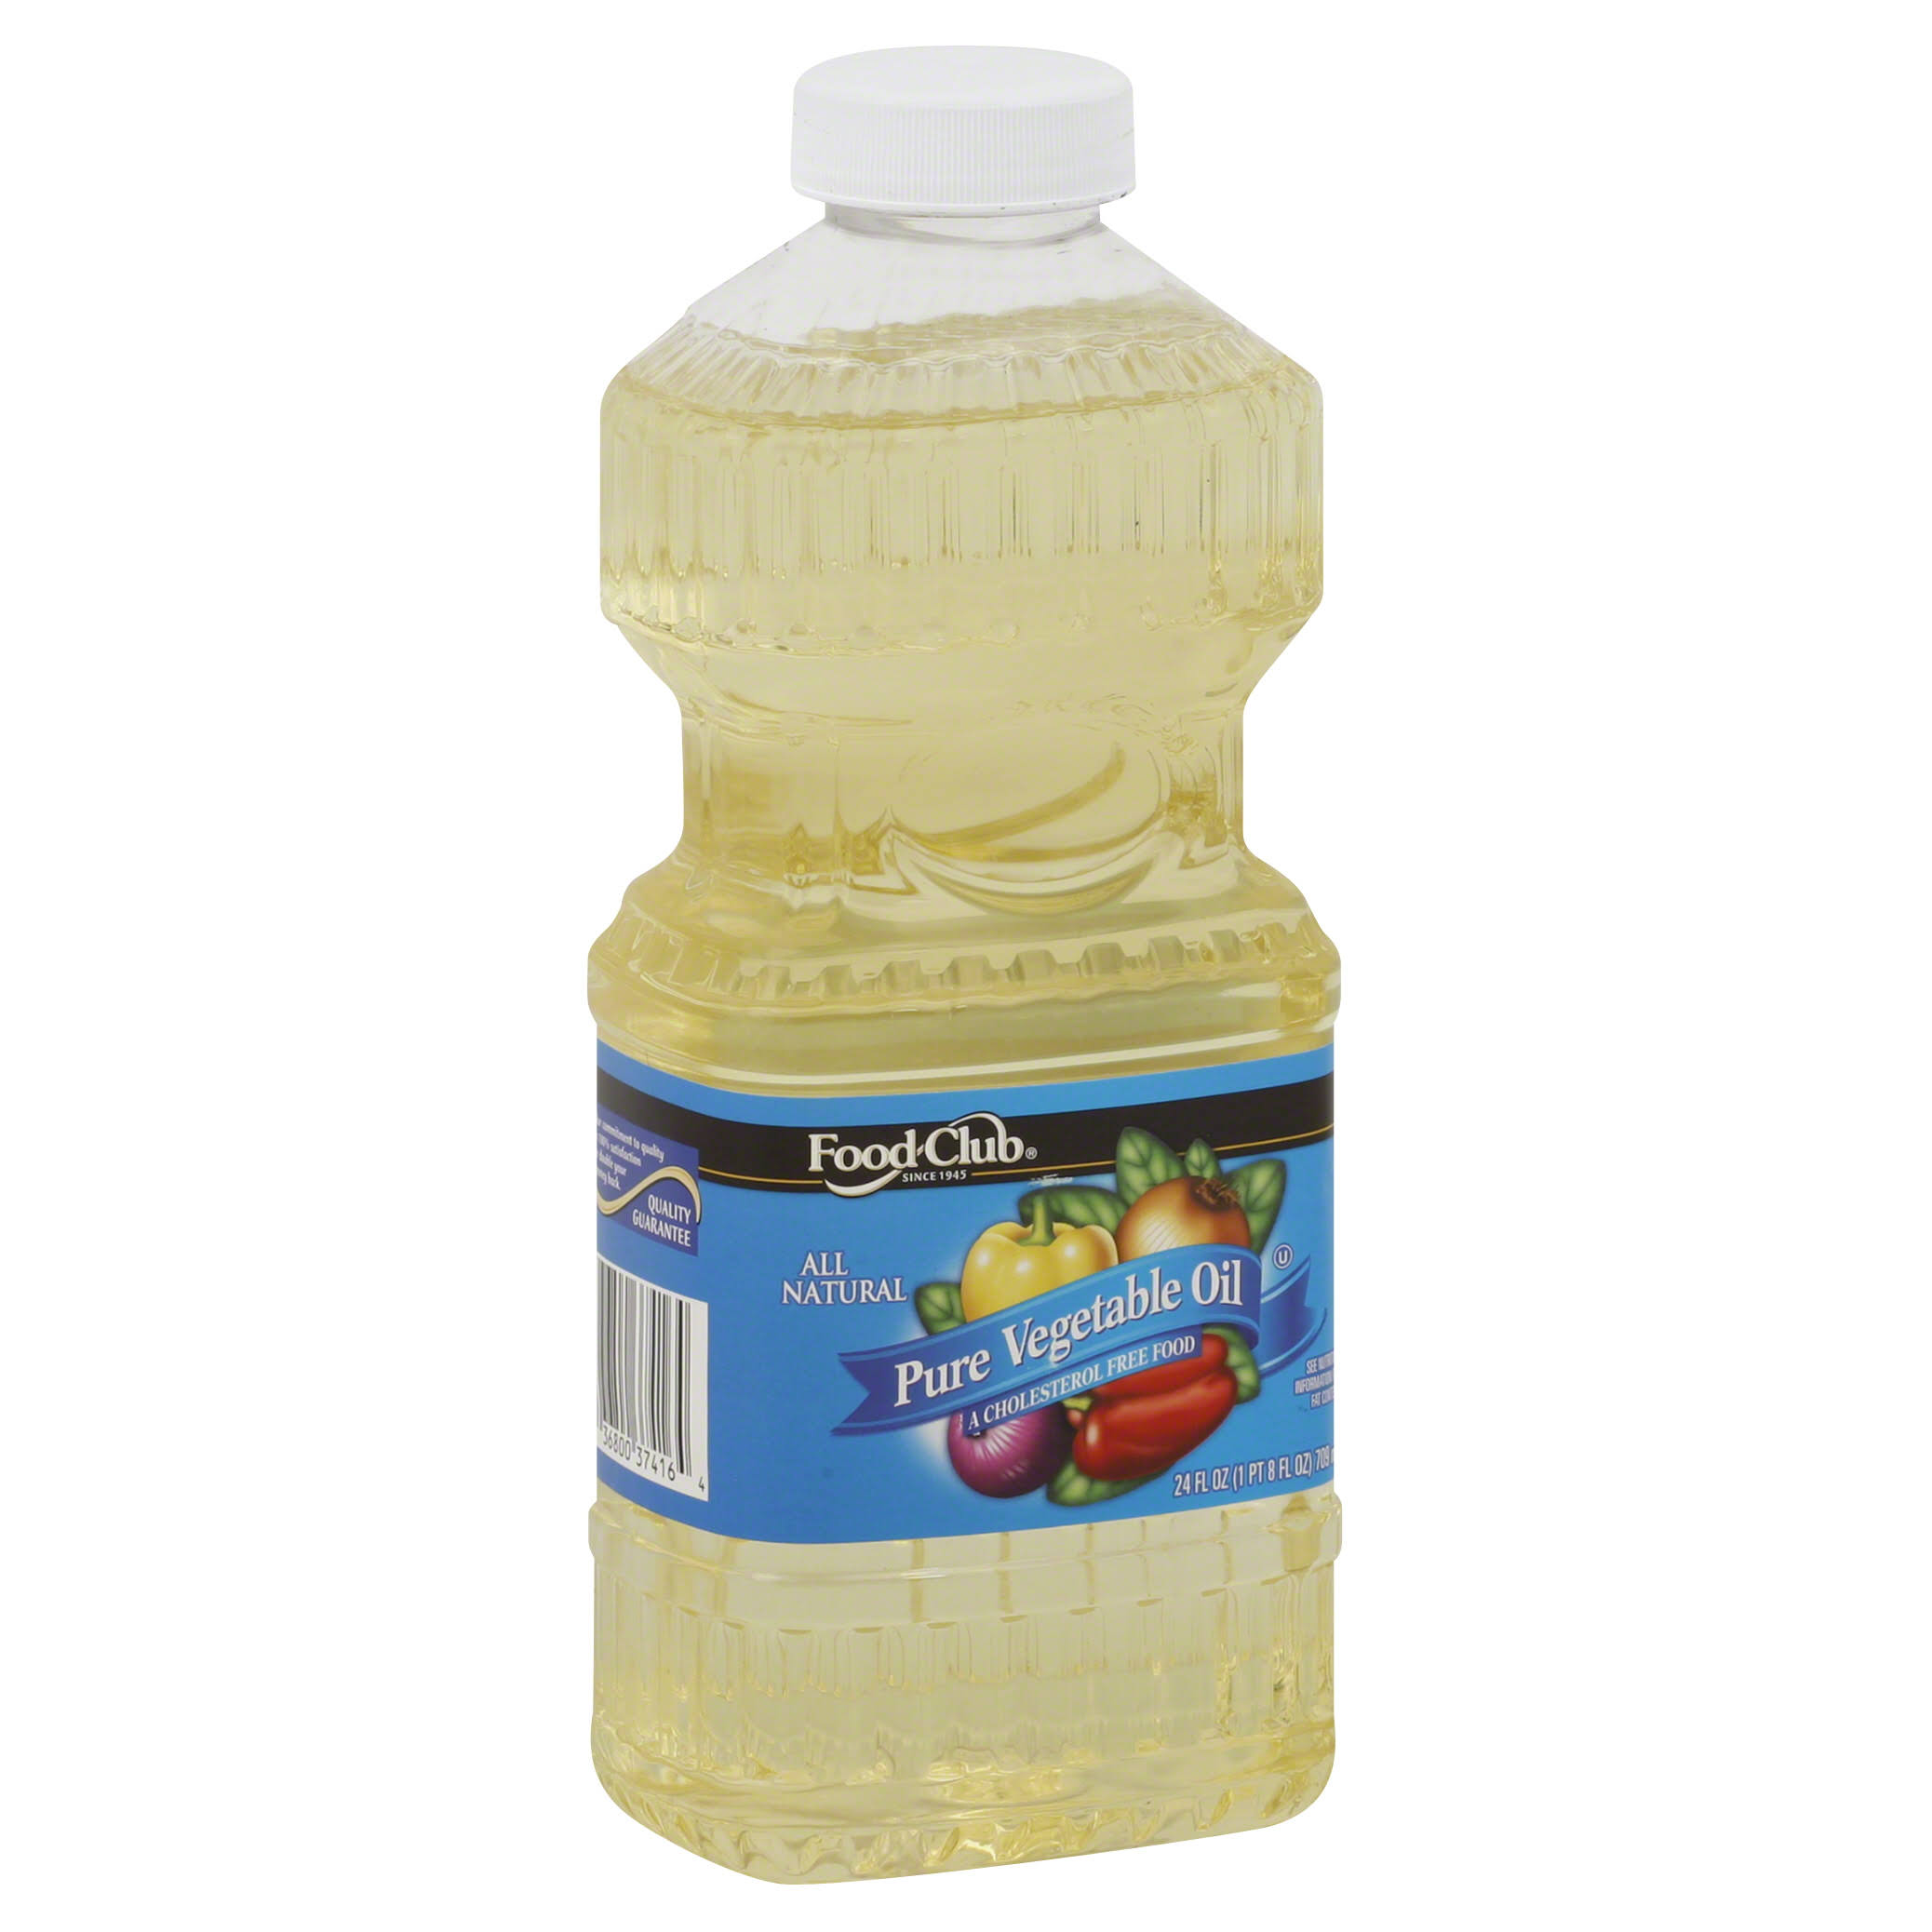 Food Club Pure Vegetable Oil - 24oz